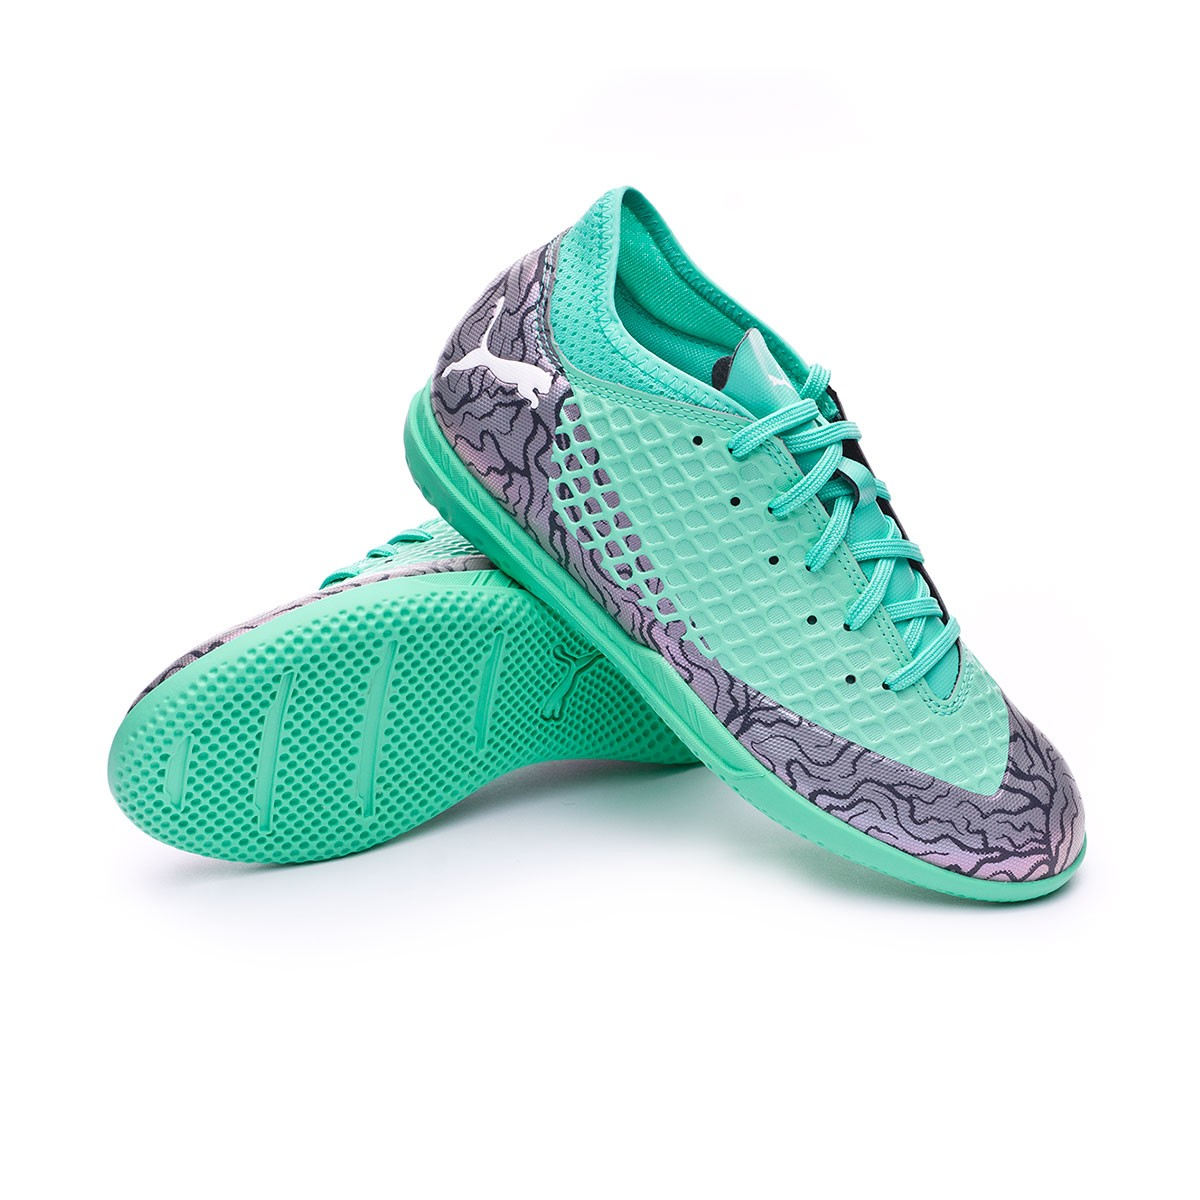 c11781ed4 Zapatilla Puma Future 2.4 IT Niño Shift-Biscay green-Puma white - Tienda de fútbol  Fútbol Emotion